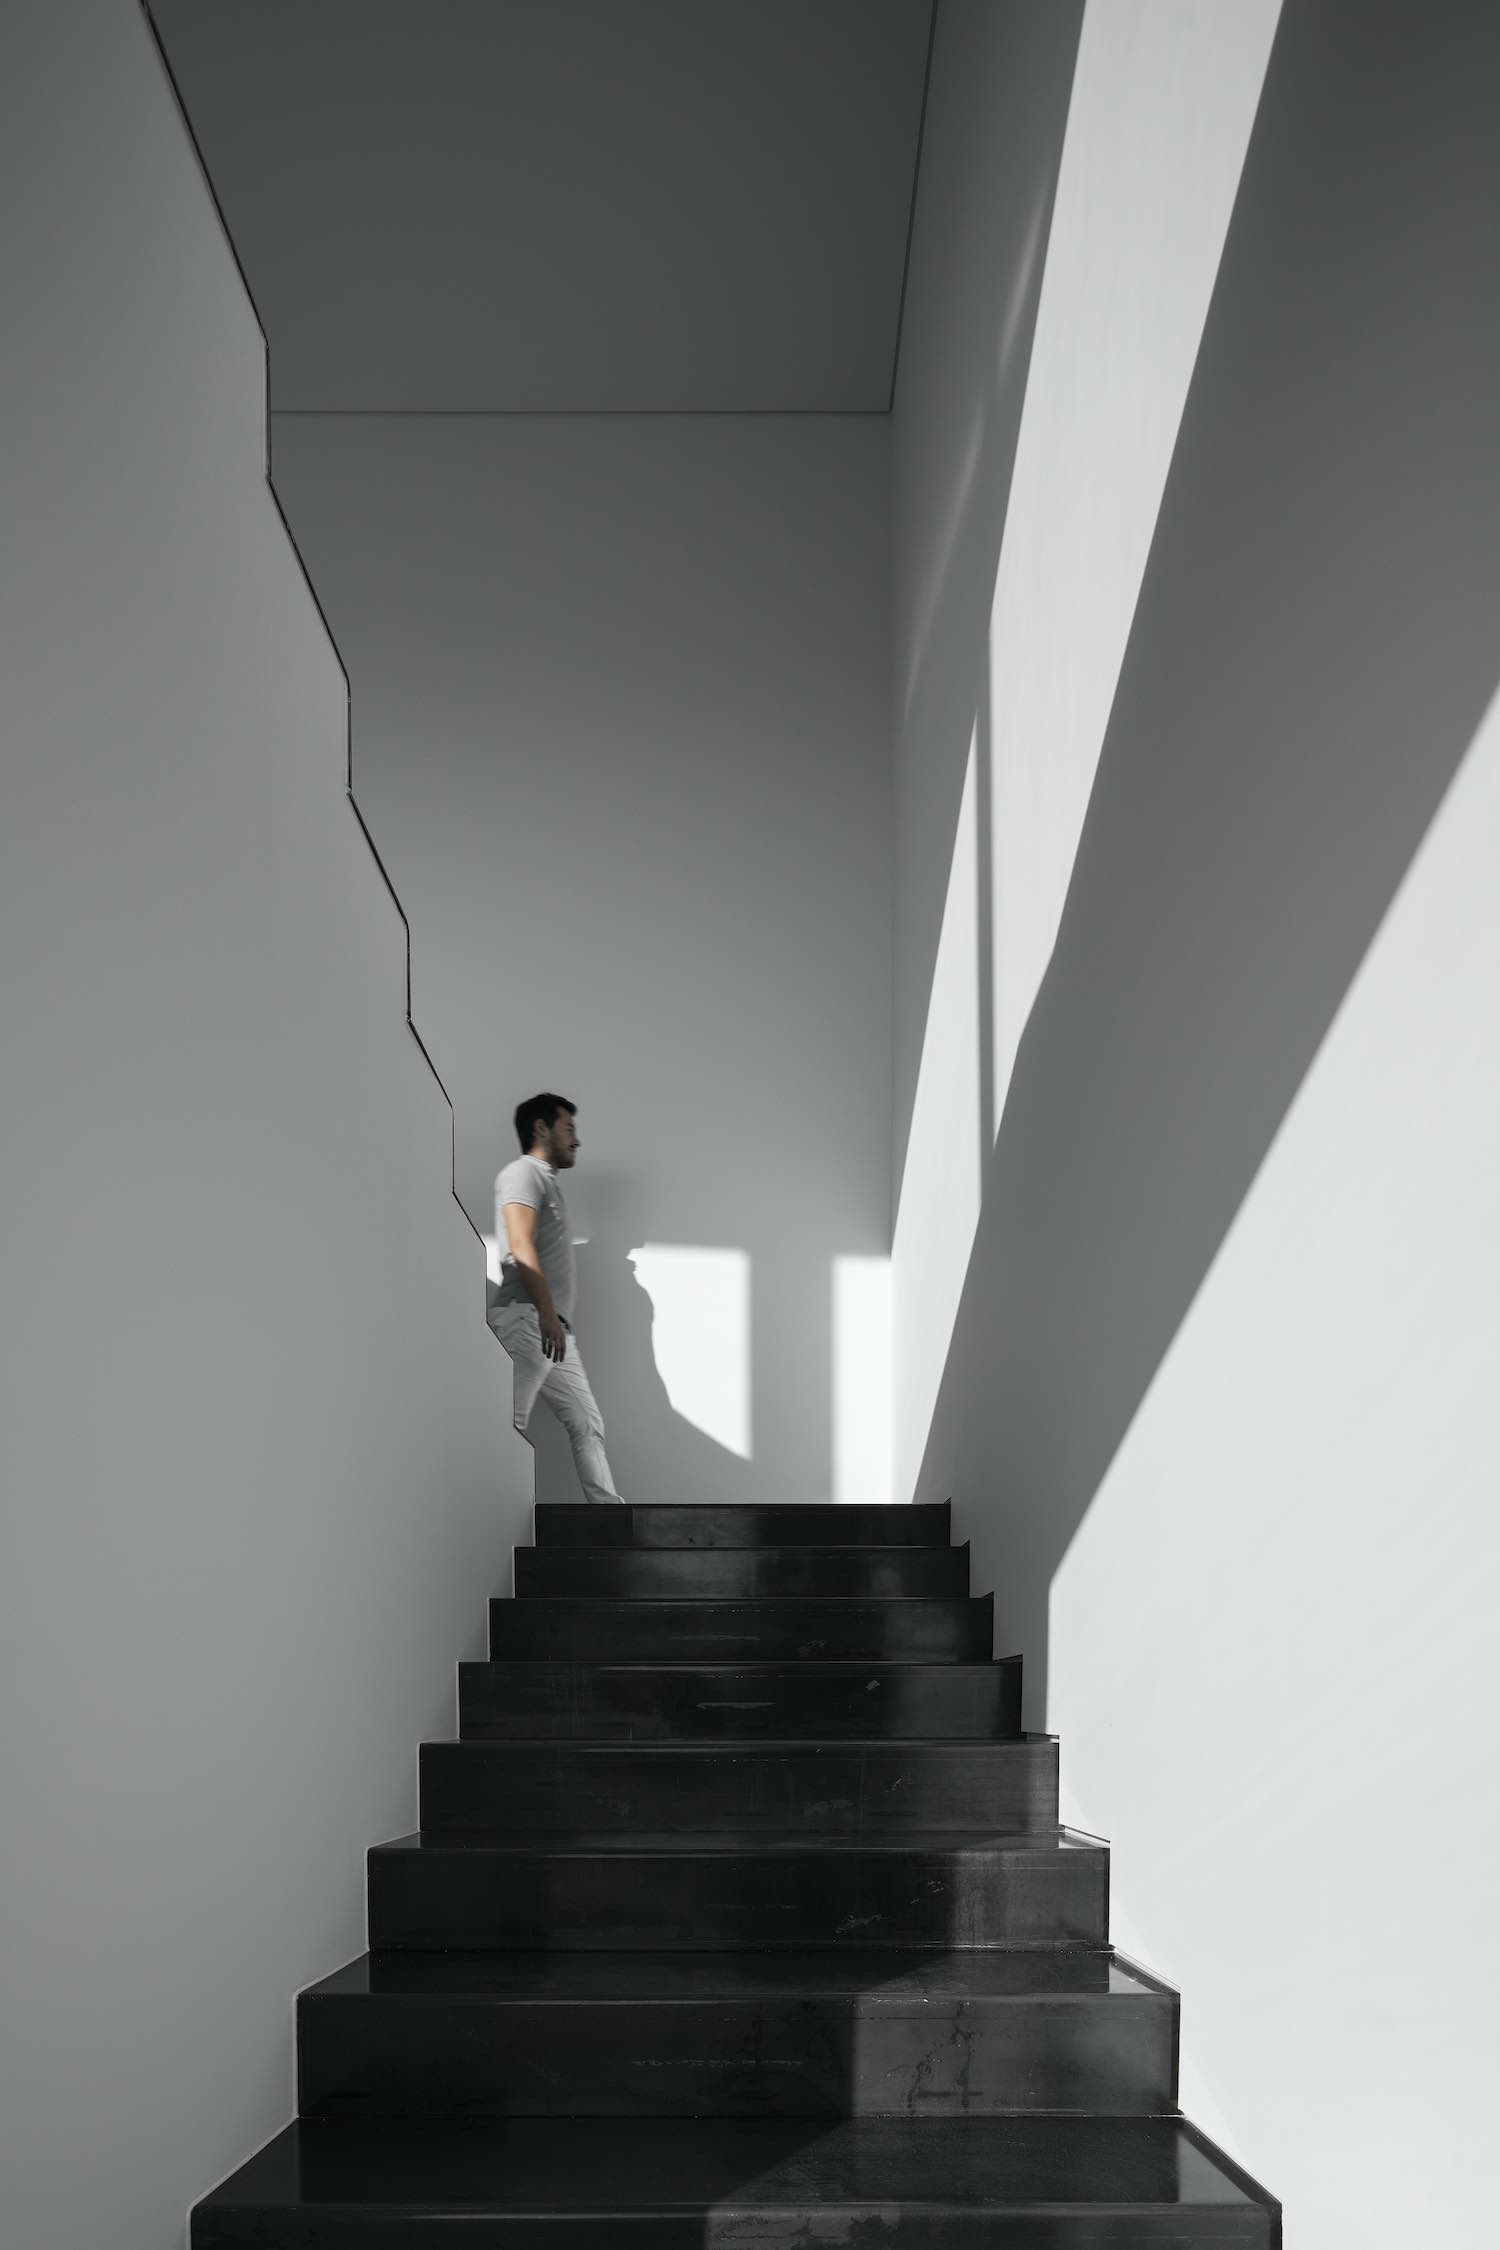 man walking on the staircase